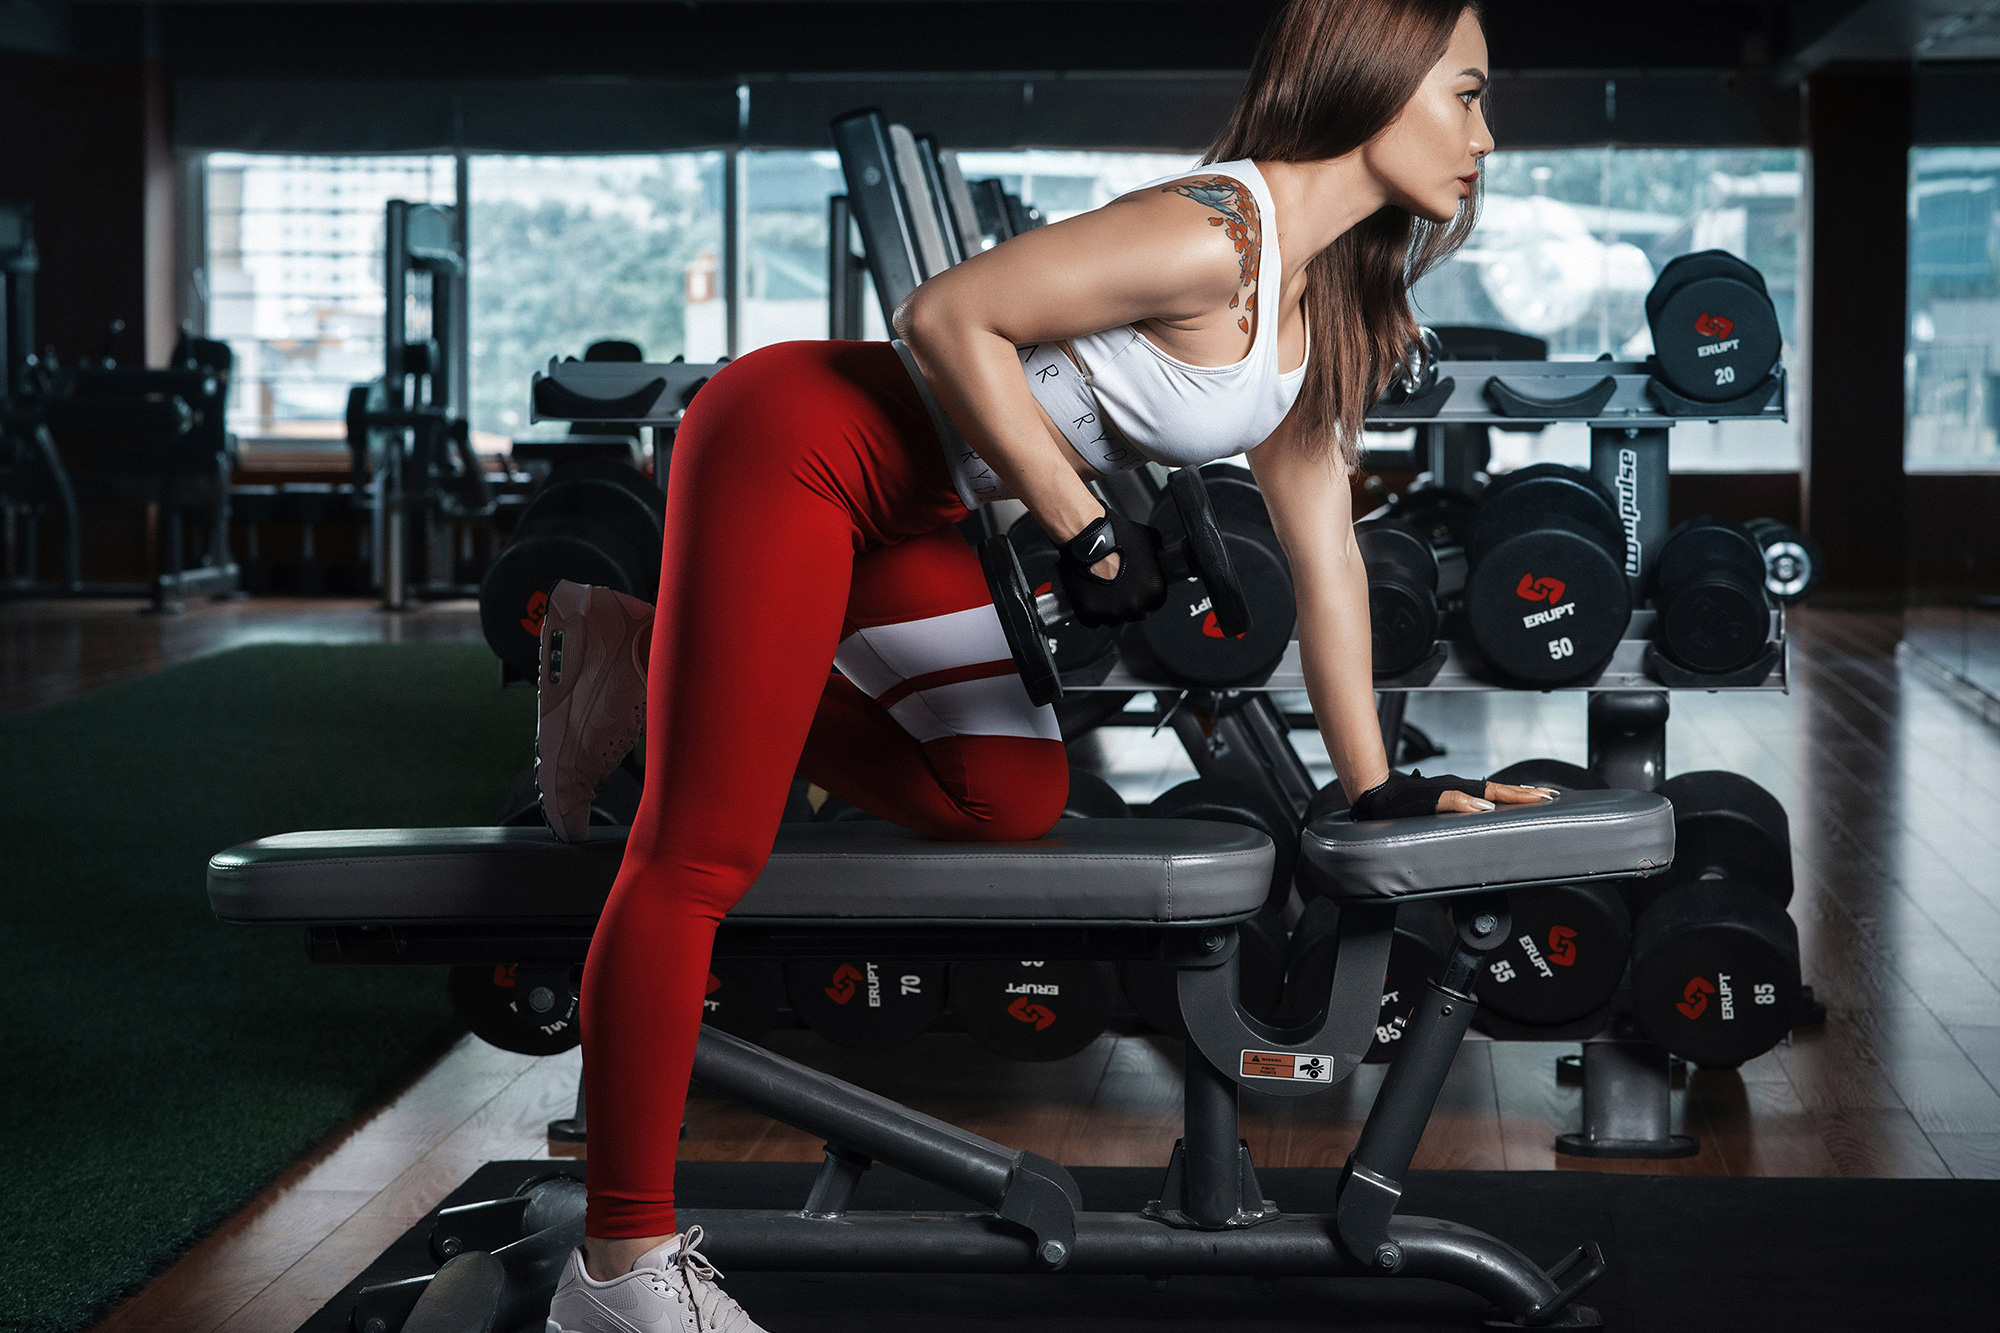 woman lifting weights kneeling on workout bench